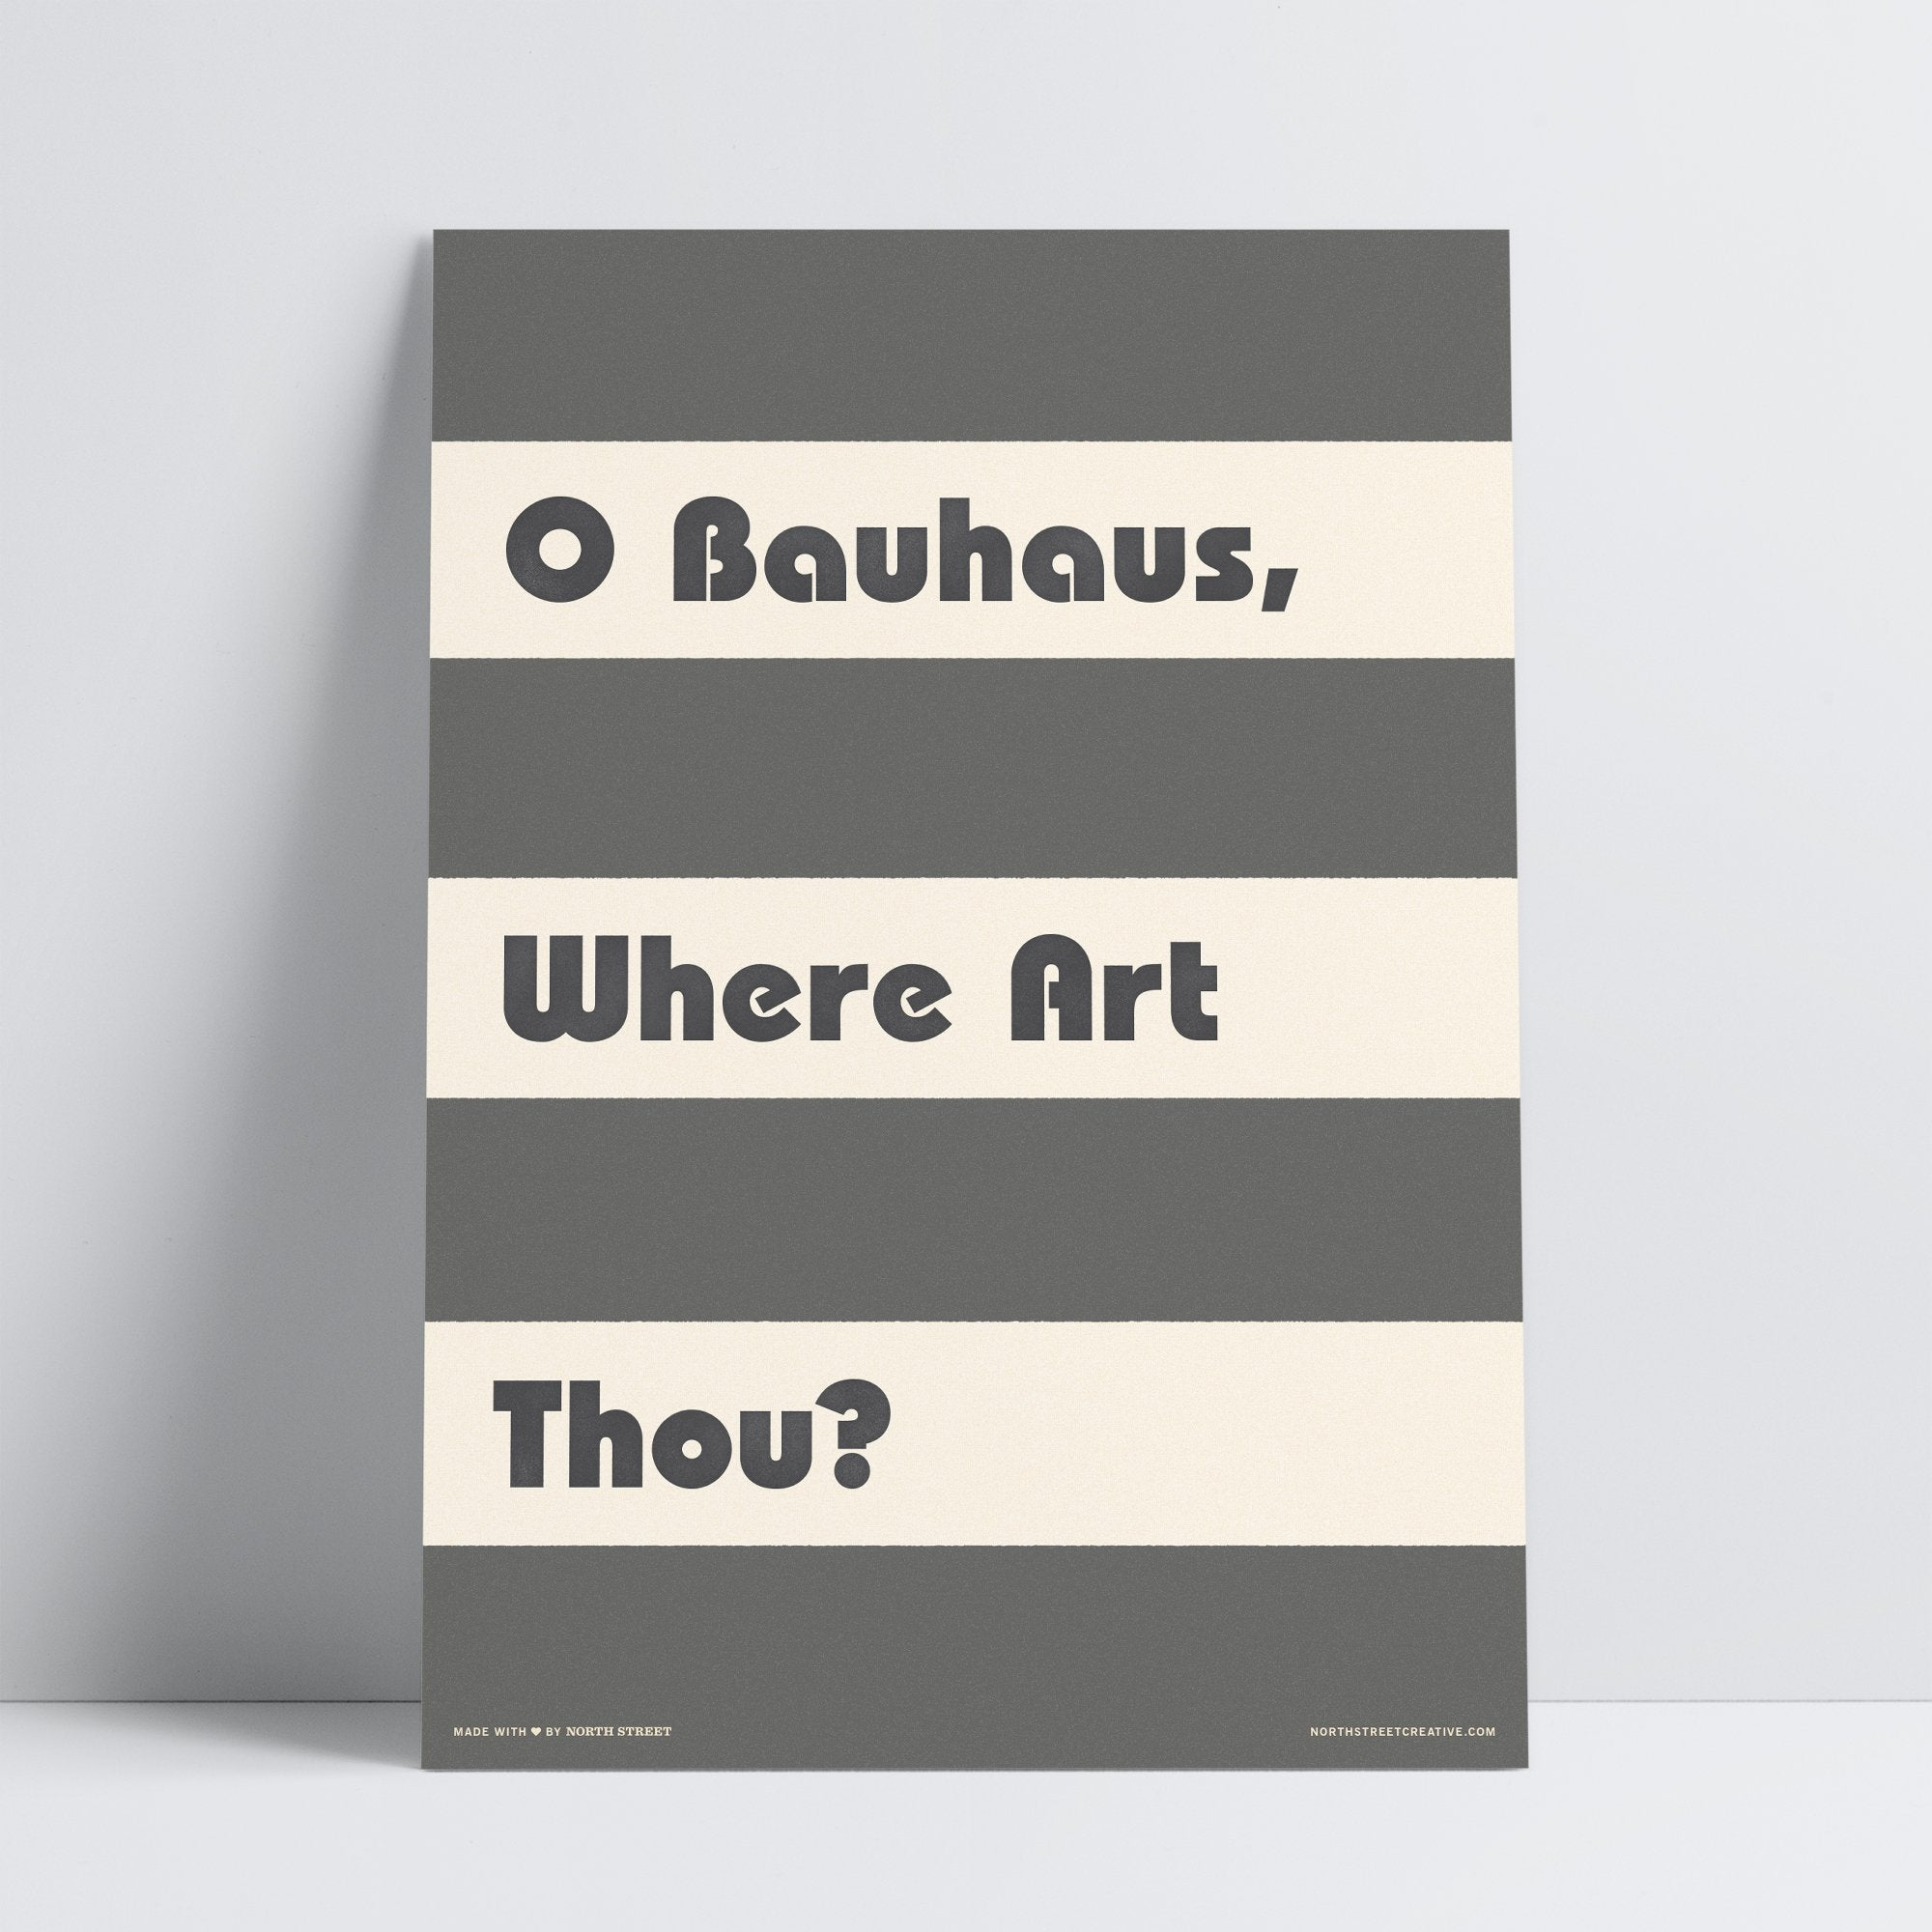 O Bauhaus, Where Art Thou?